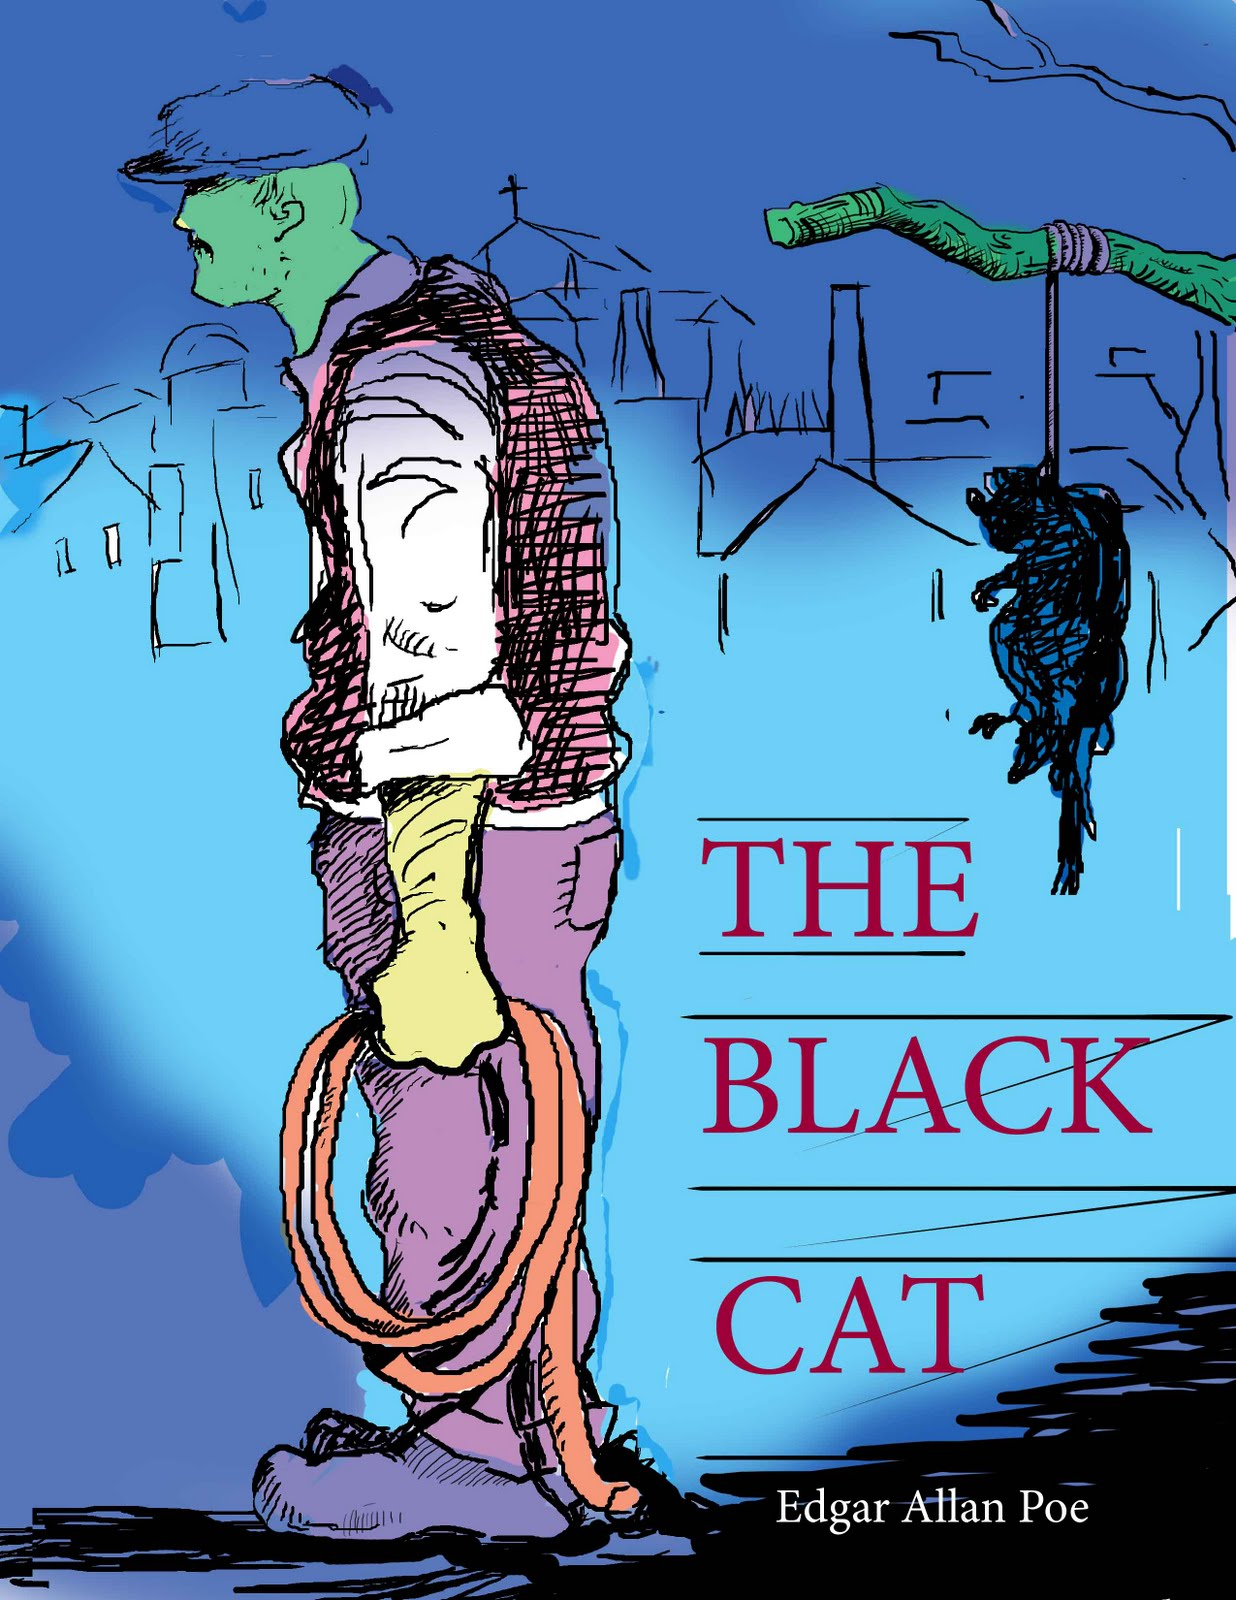 an analysis of the narrators insanity in the black cat by edgar allan poe A critical analysis between two characters from two separate stories by edgar allan poe sources cited: poe, edgar allan the black cat united states.